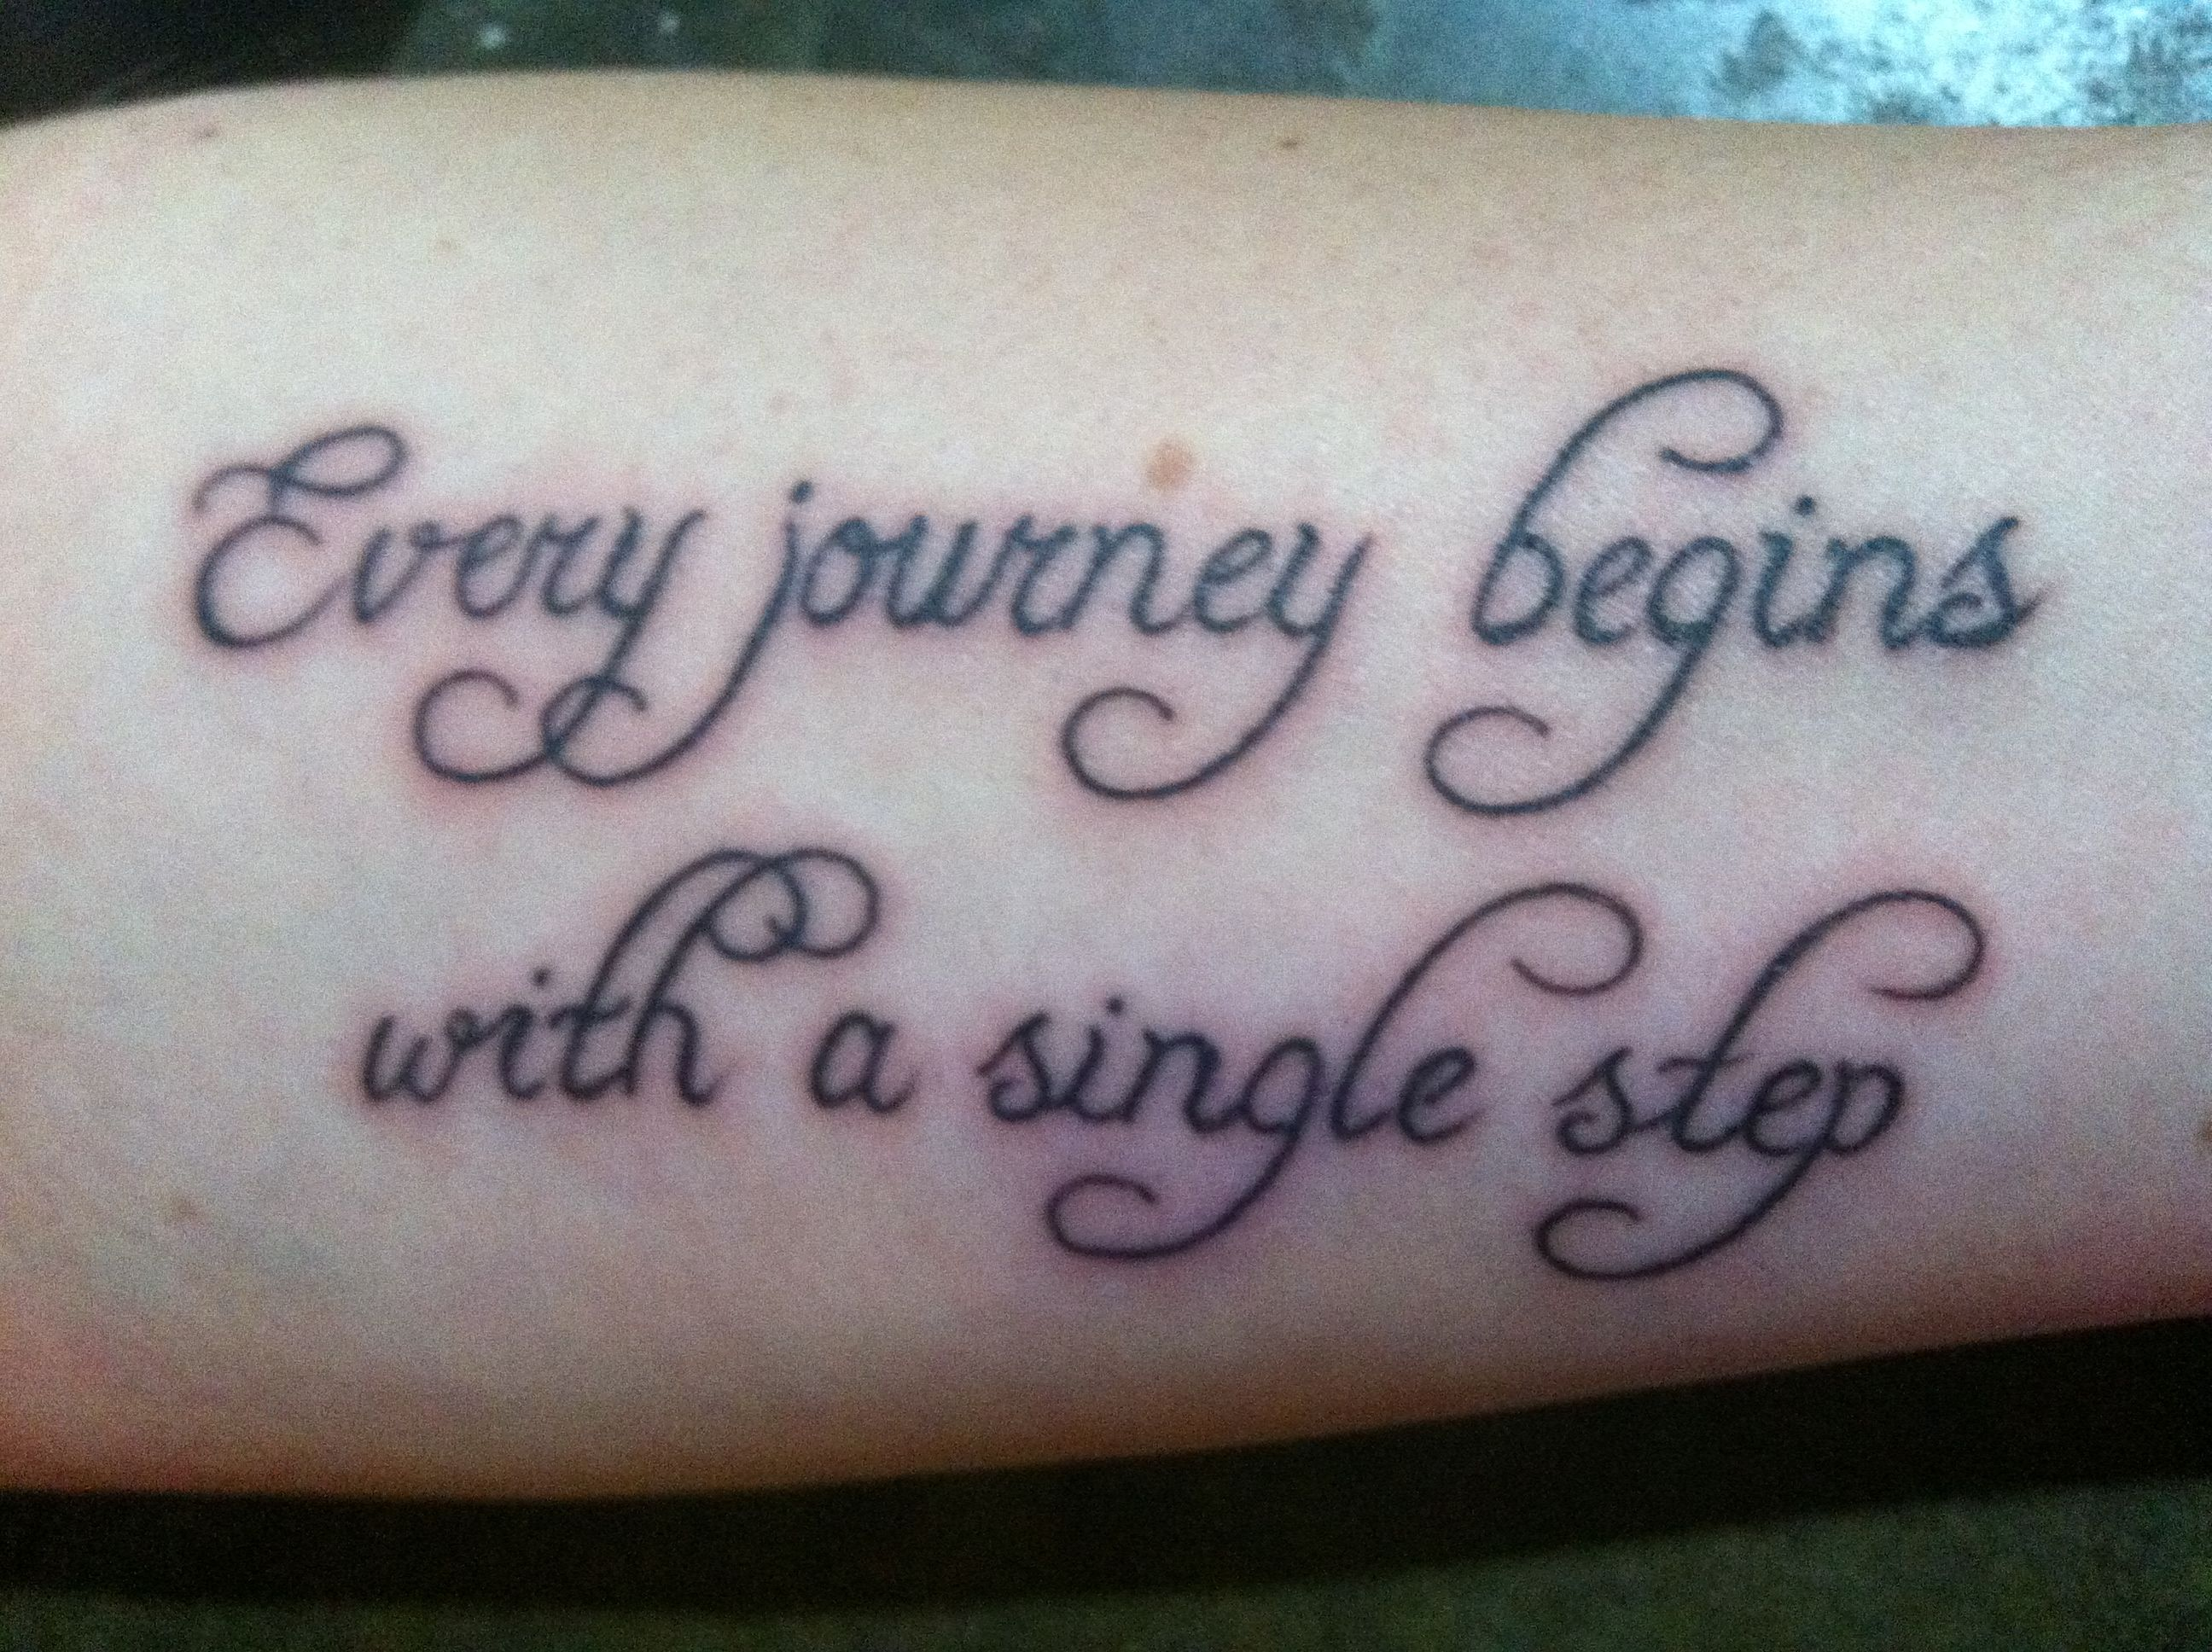 Every journey begins with a single step,  Many paths will be entered with that single step!  Don't be afraid!